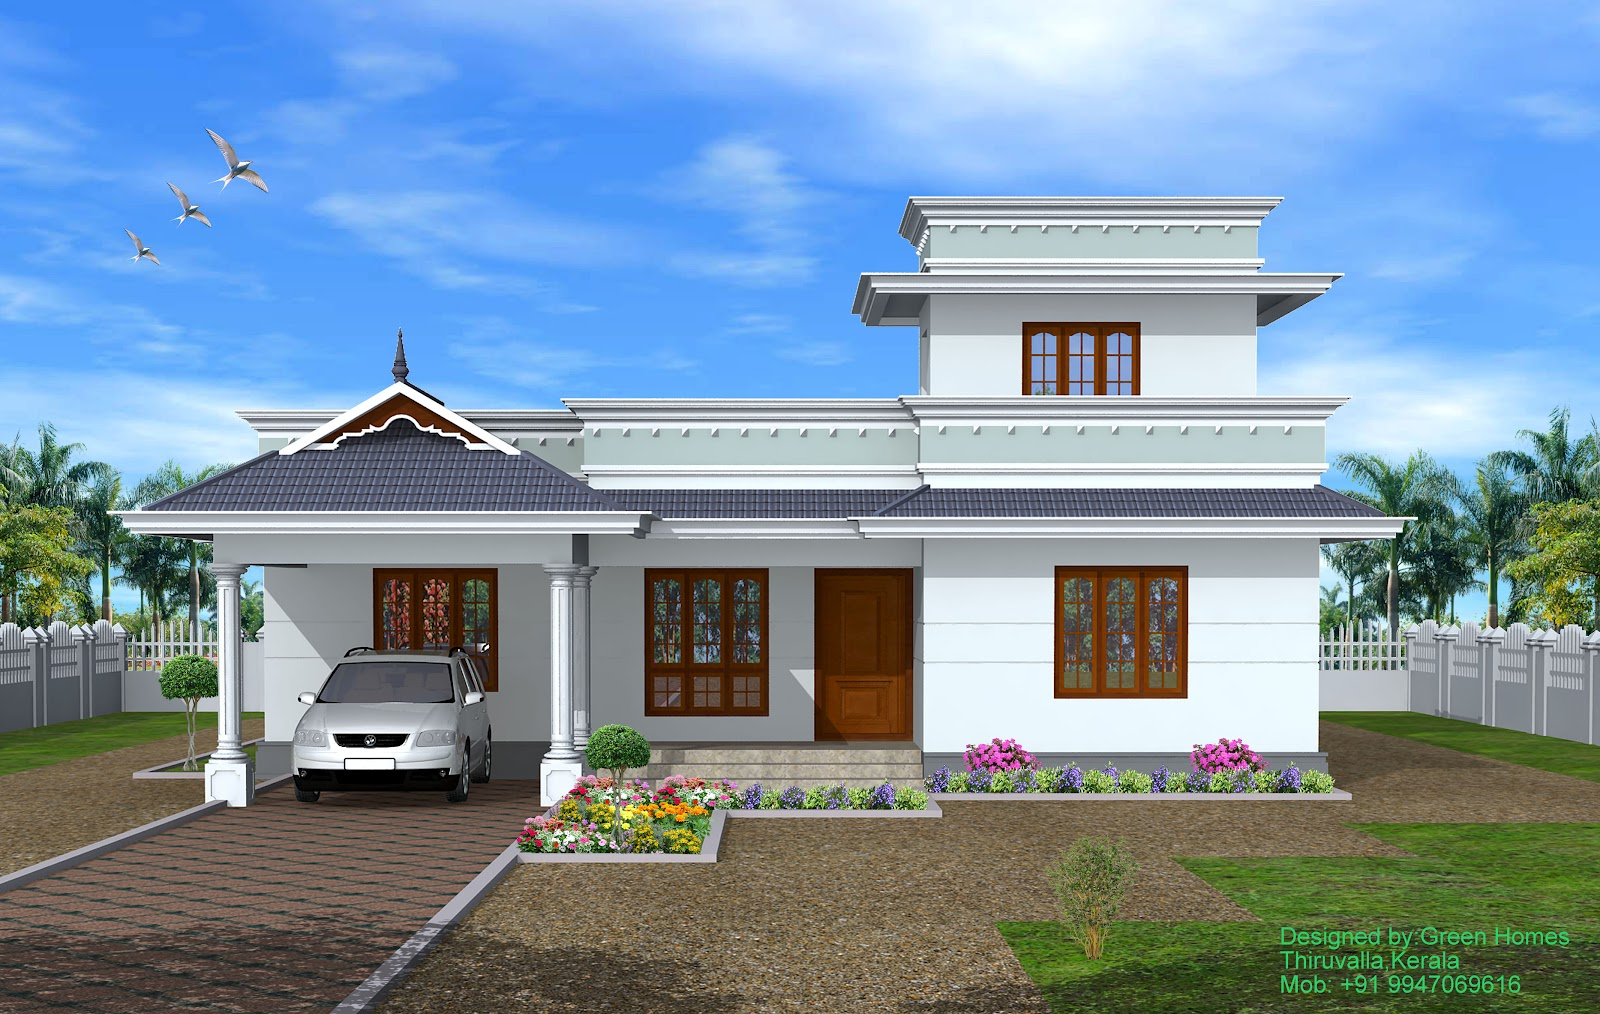 Green homes kerala 4 bhk single storey house 1950 for 4 bedroom house plans kerala style architect